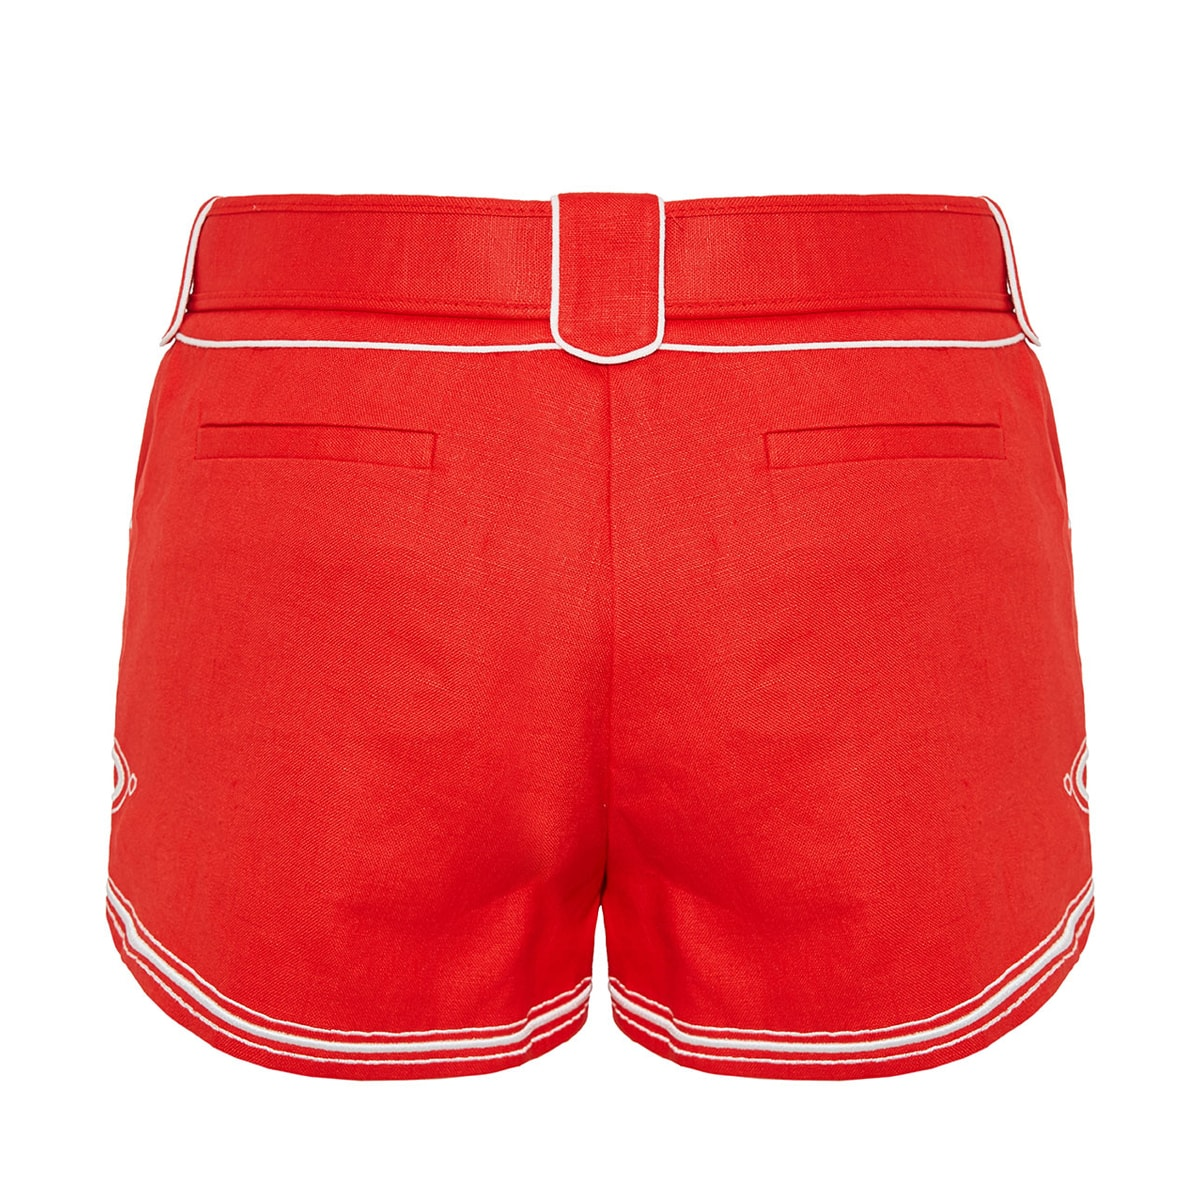 Ninety-Six corded linen shorts